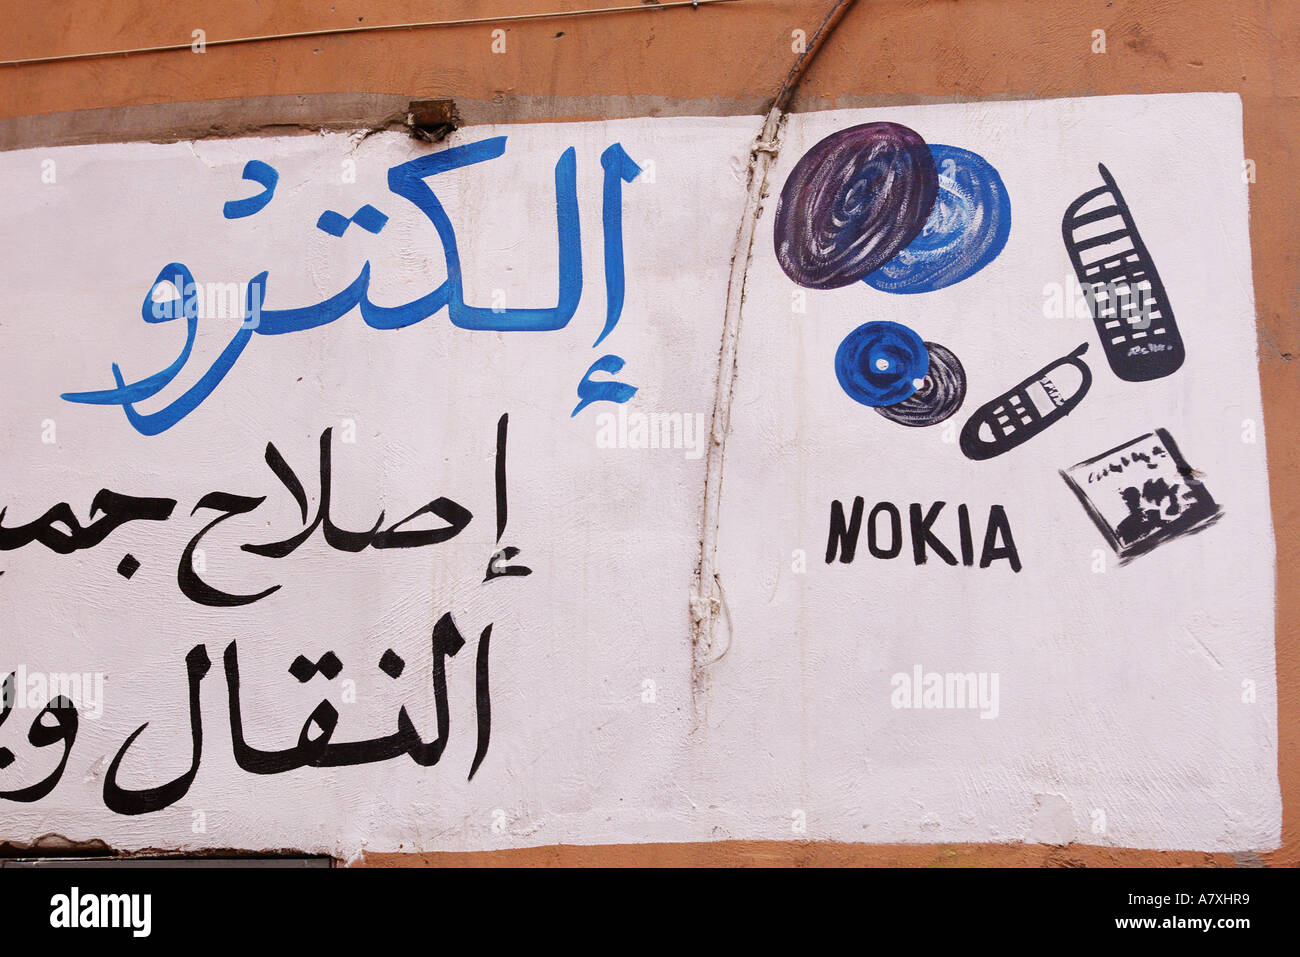 Funny Humorous Nokia Mobile Phone Advert Or Advertising On The Wall Stock Photo Alamy